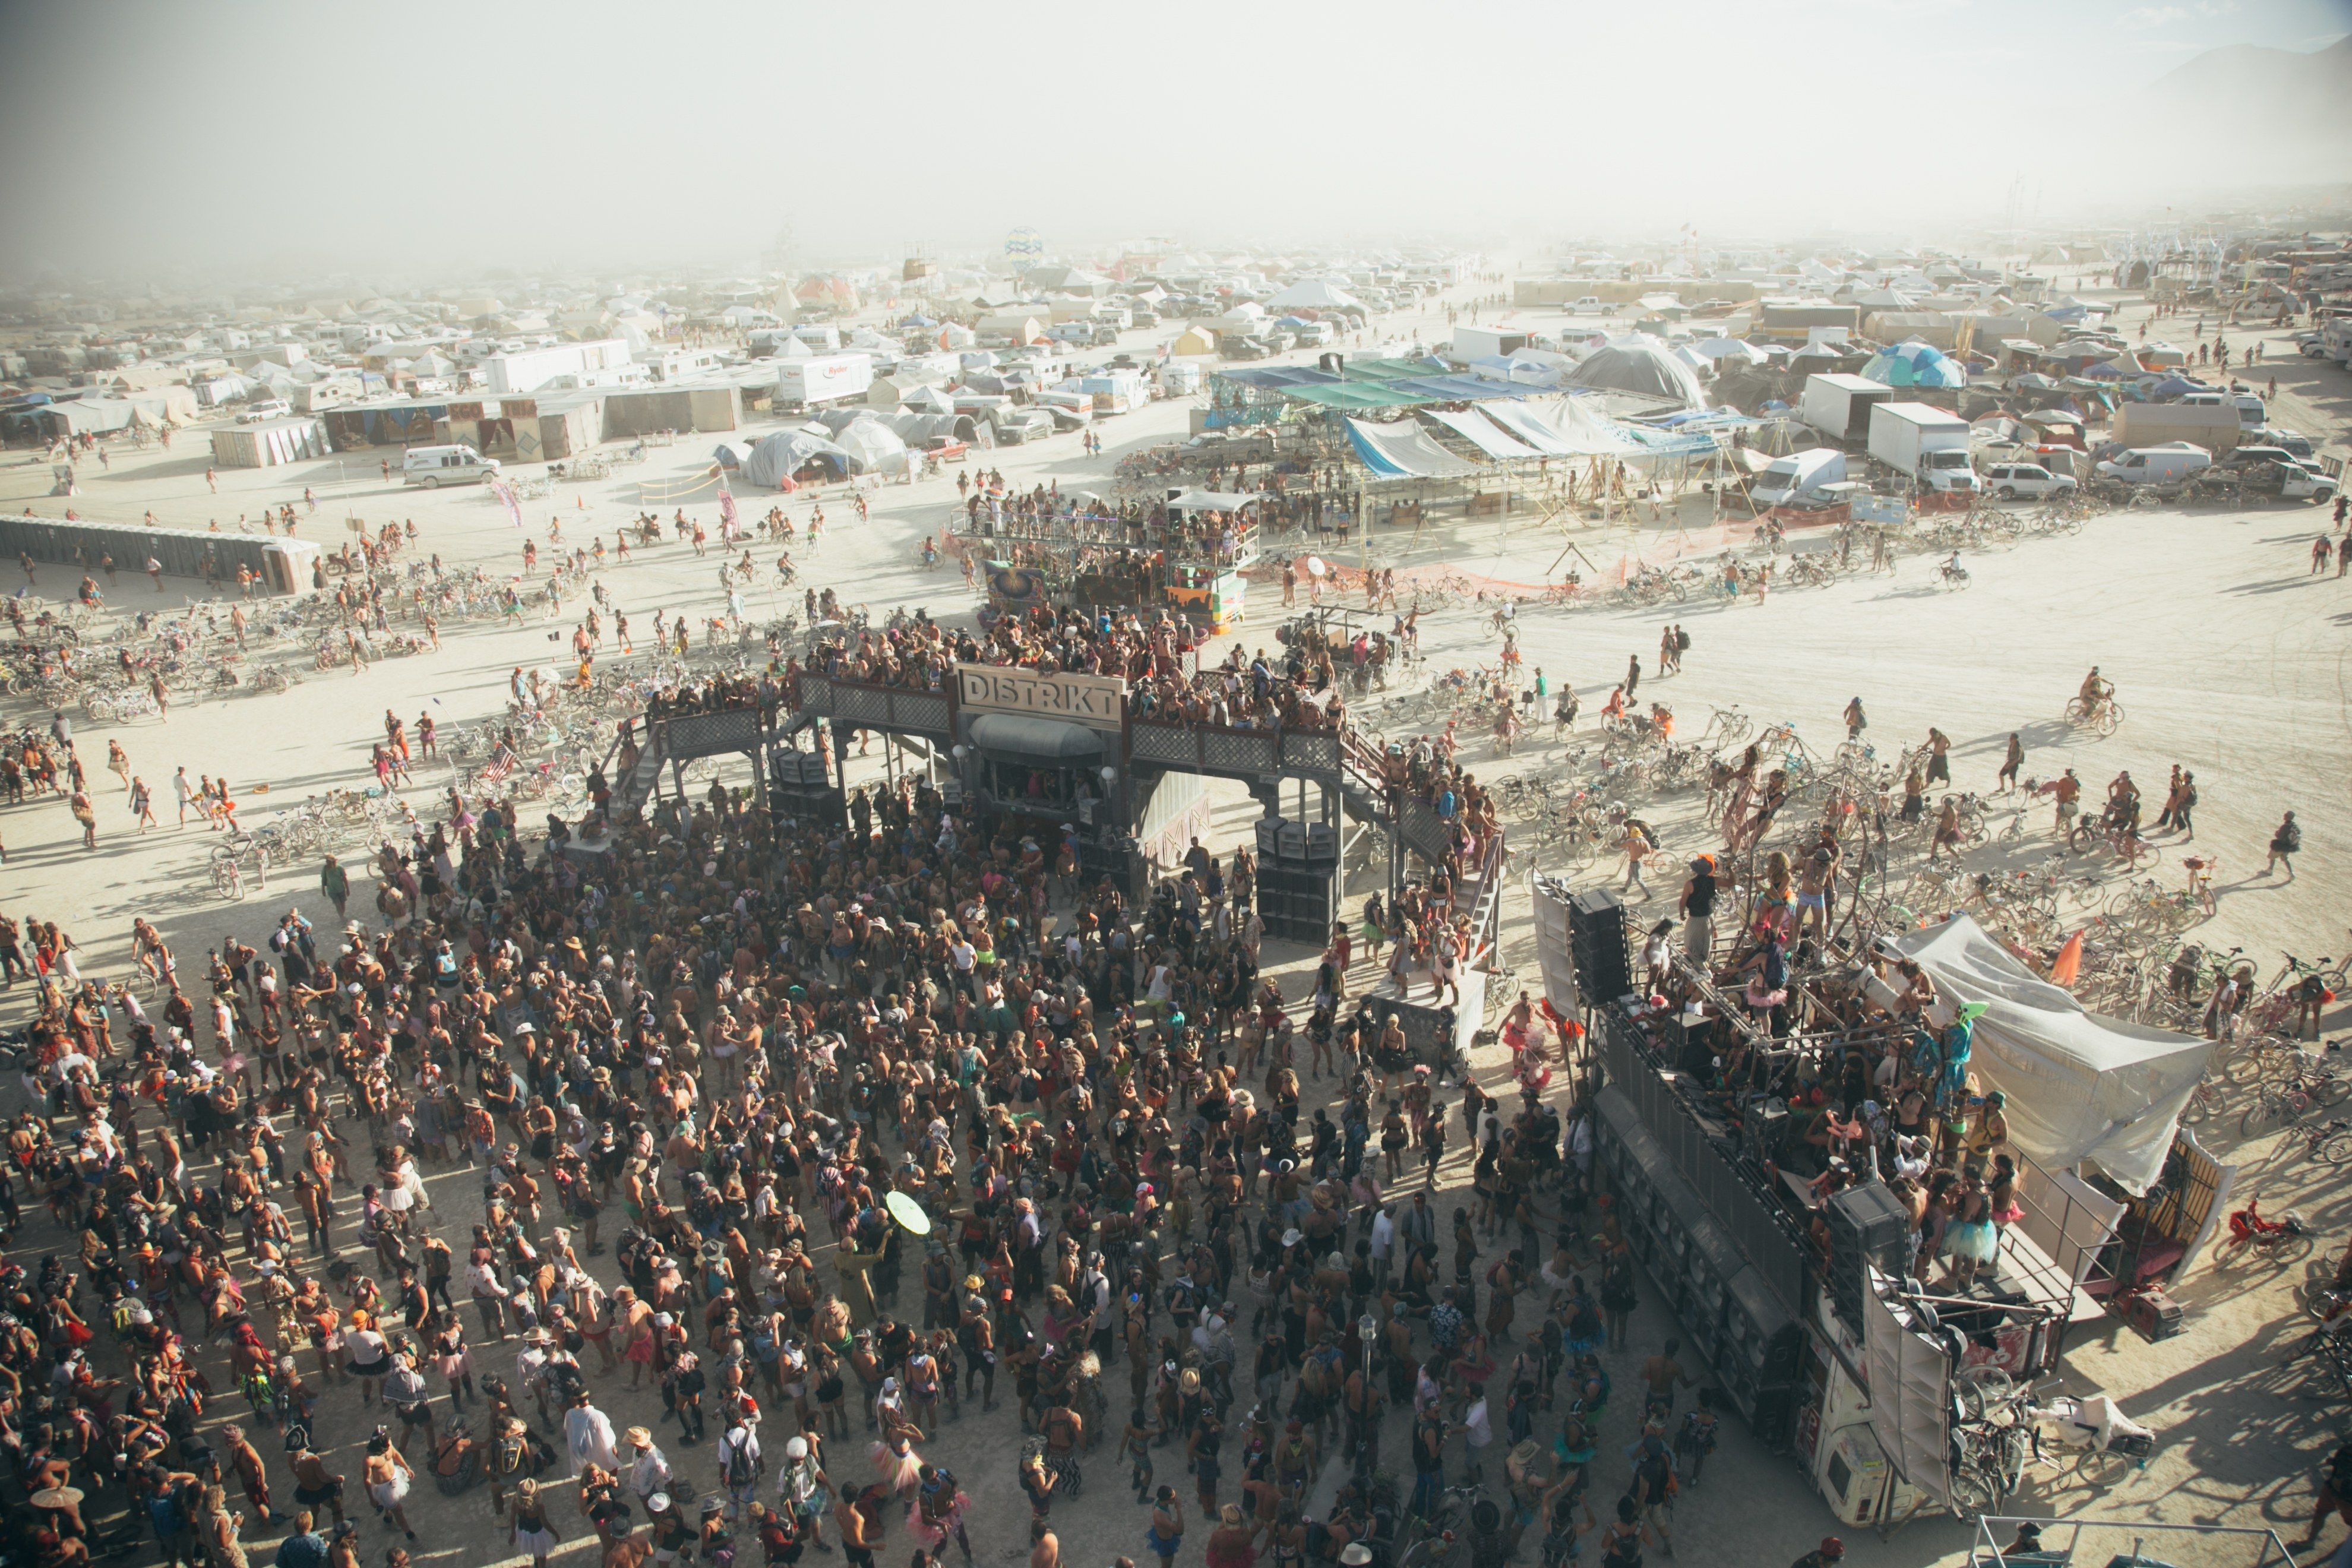 All the Beautiful People and Out of Control Looks at Burning Man Photos | W Magazine